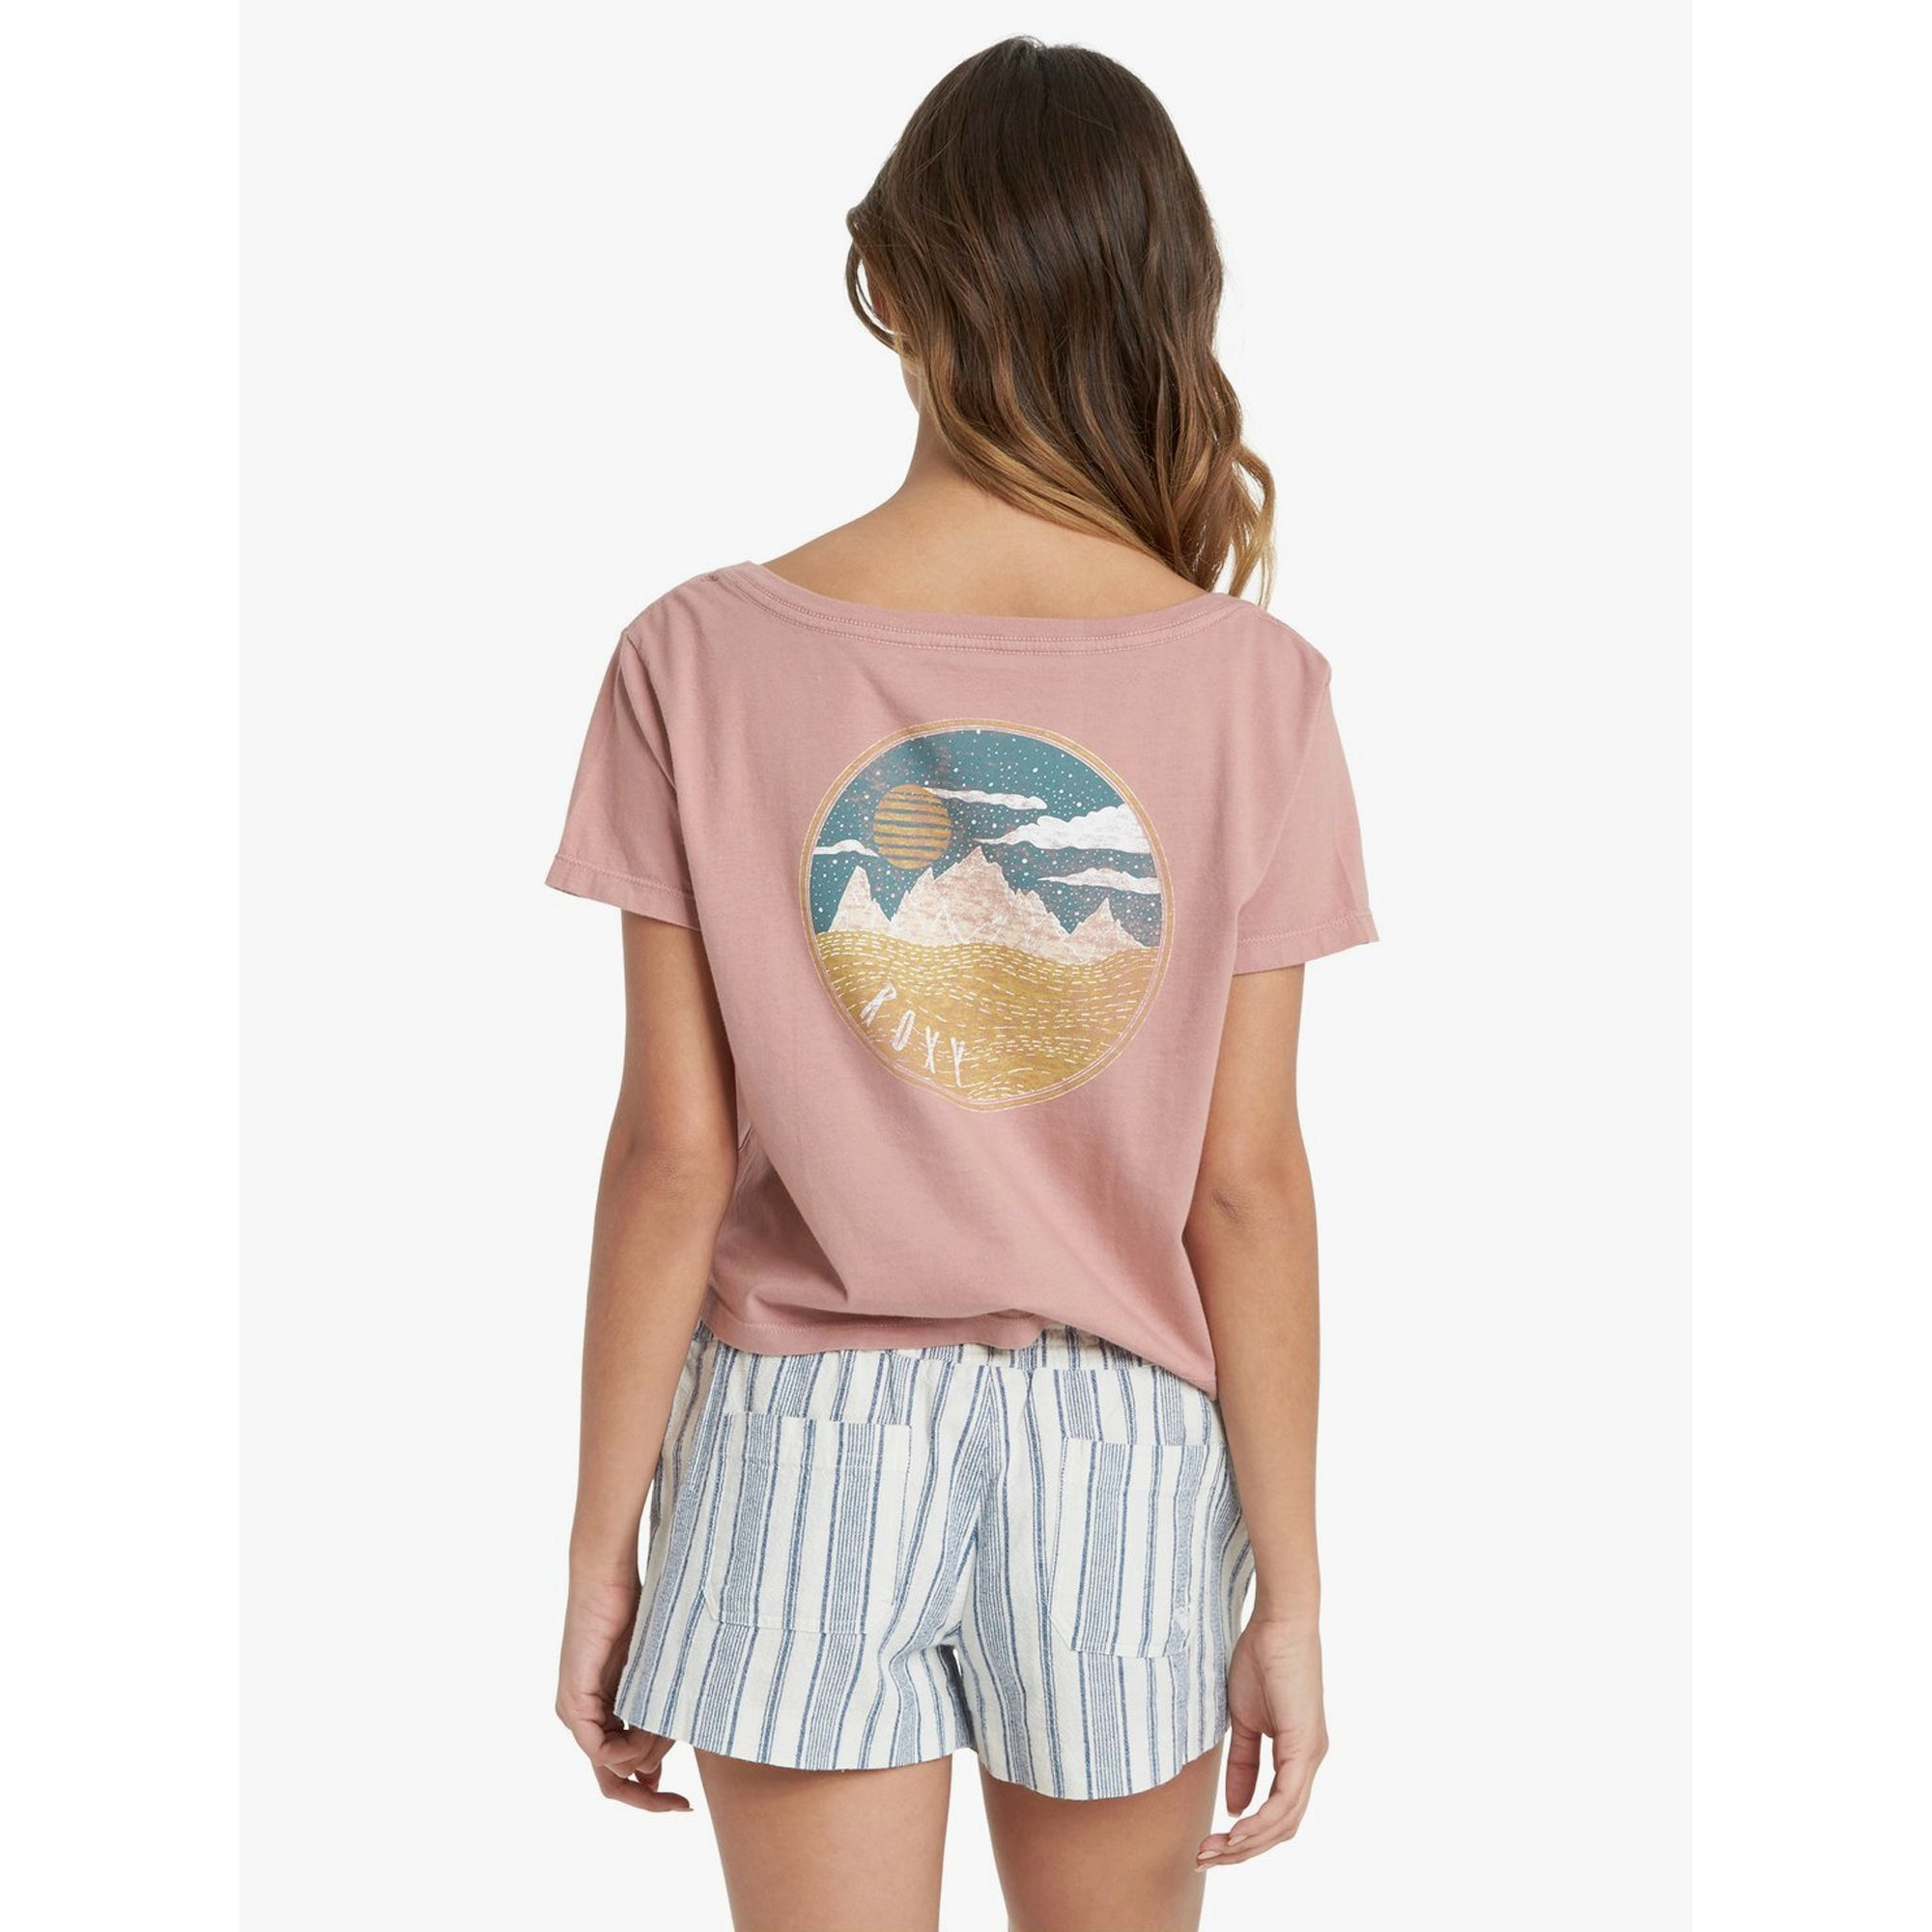 Roxy Mountain Dream Women's S/S V-Neck T-Shirt